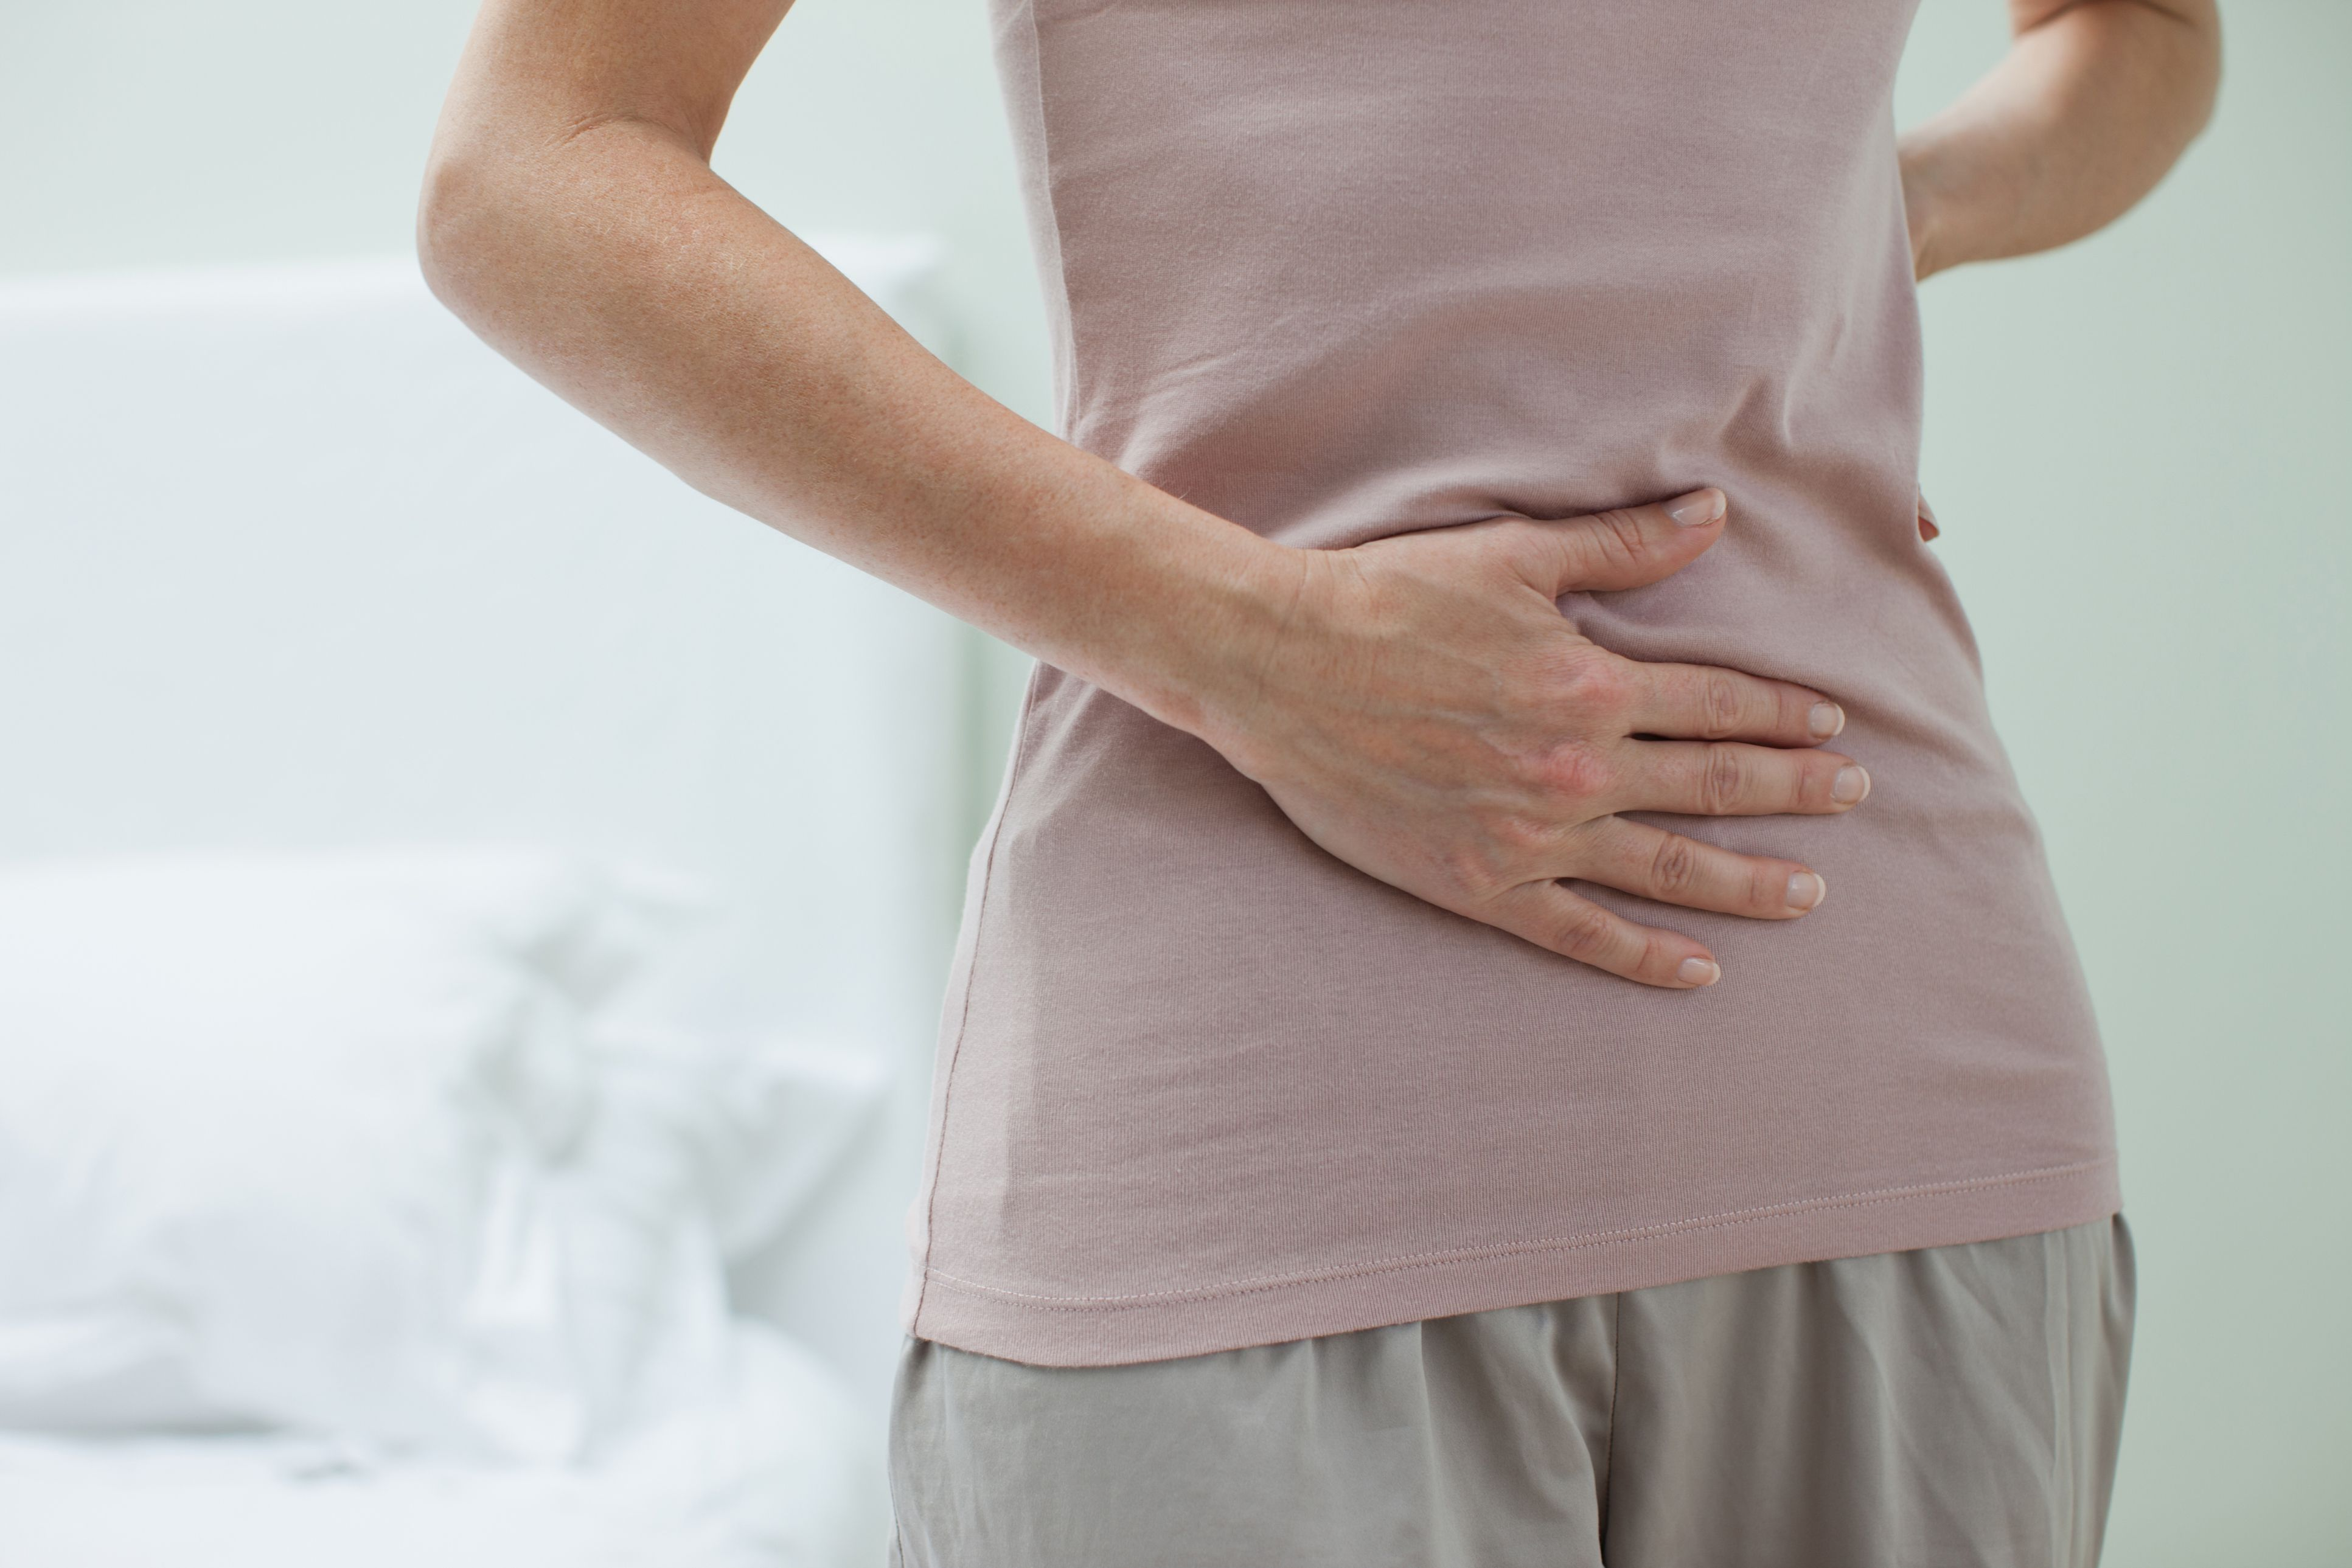 how to stop constipation on period